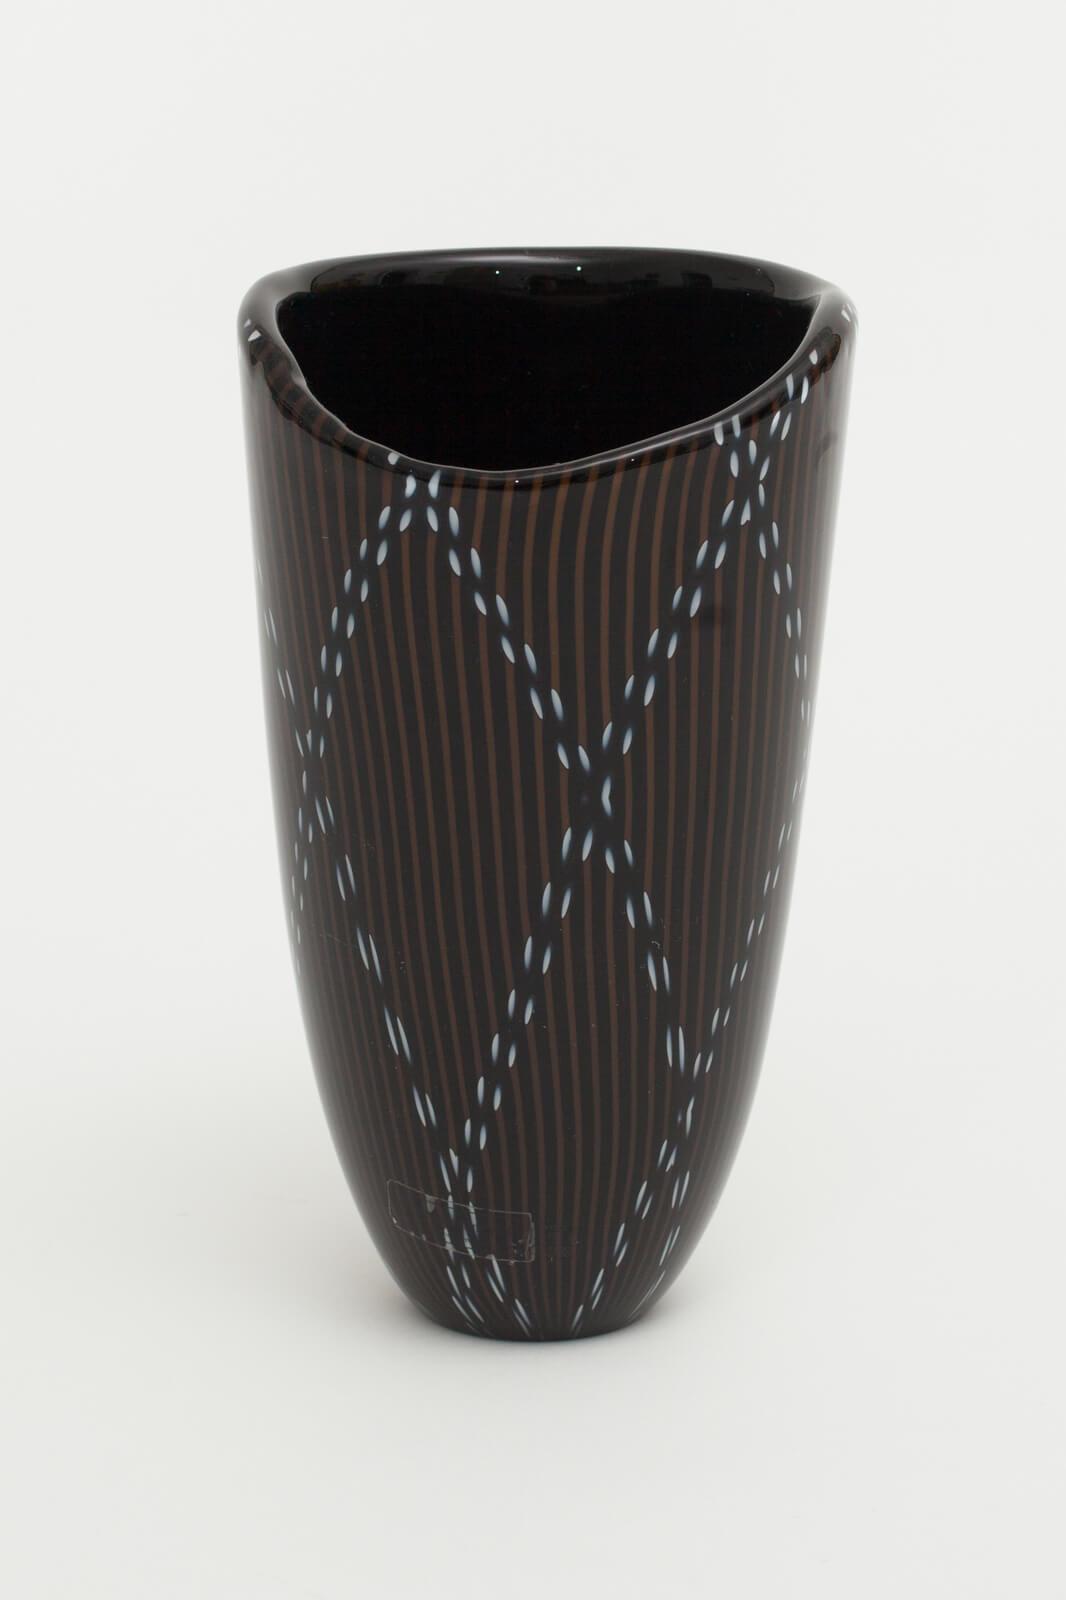 Vase by Lino Tagliapietra for sale